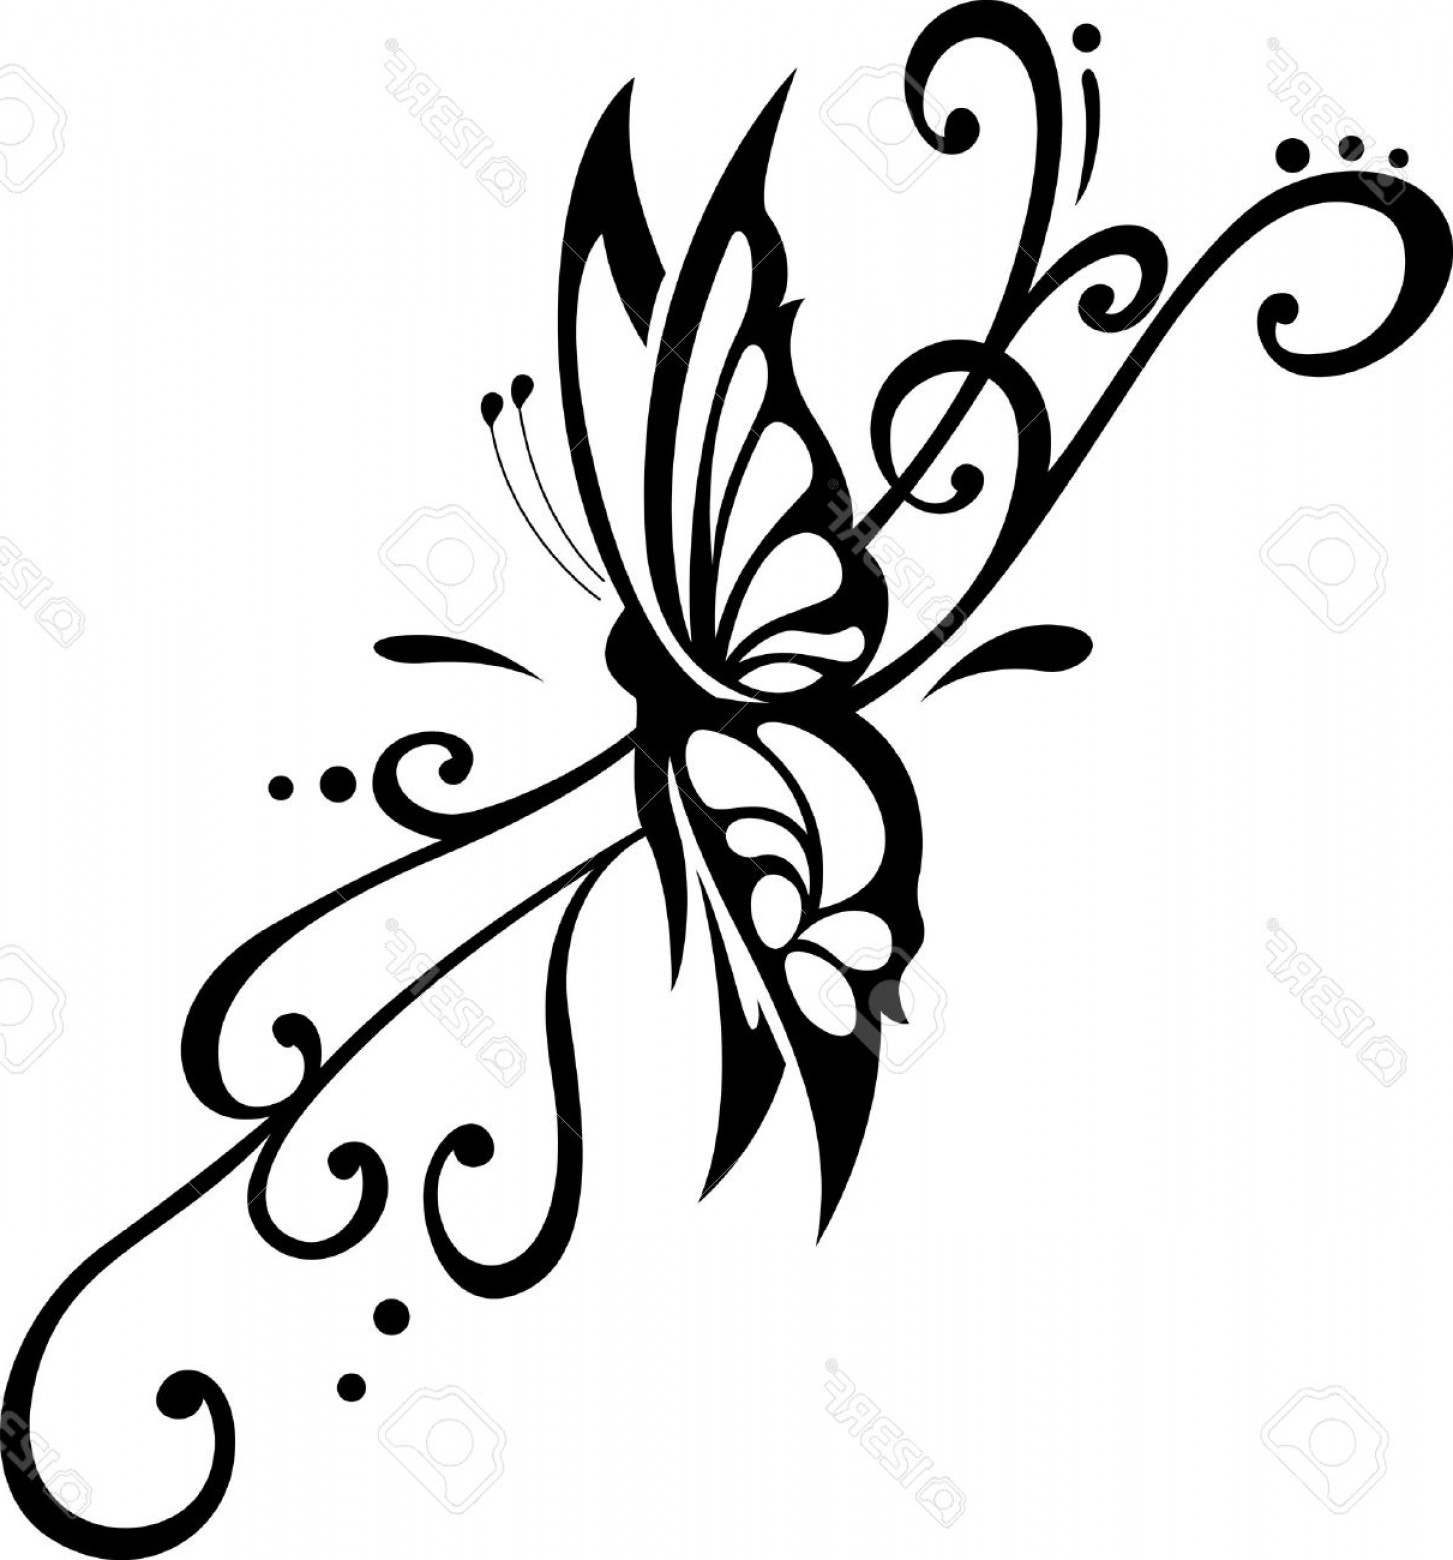 Mariposa Vector: Photovector Floral Ornament With Butterfly Element For Design